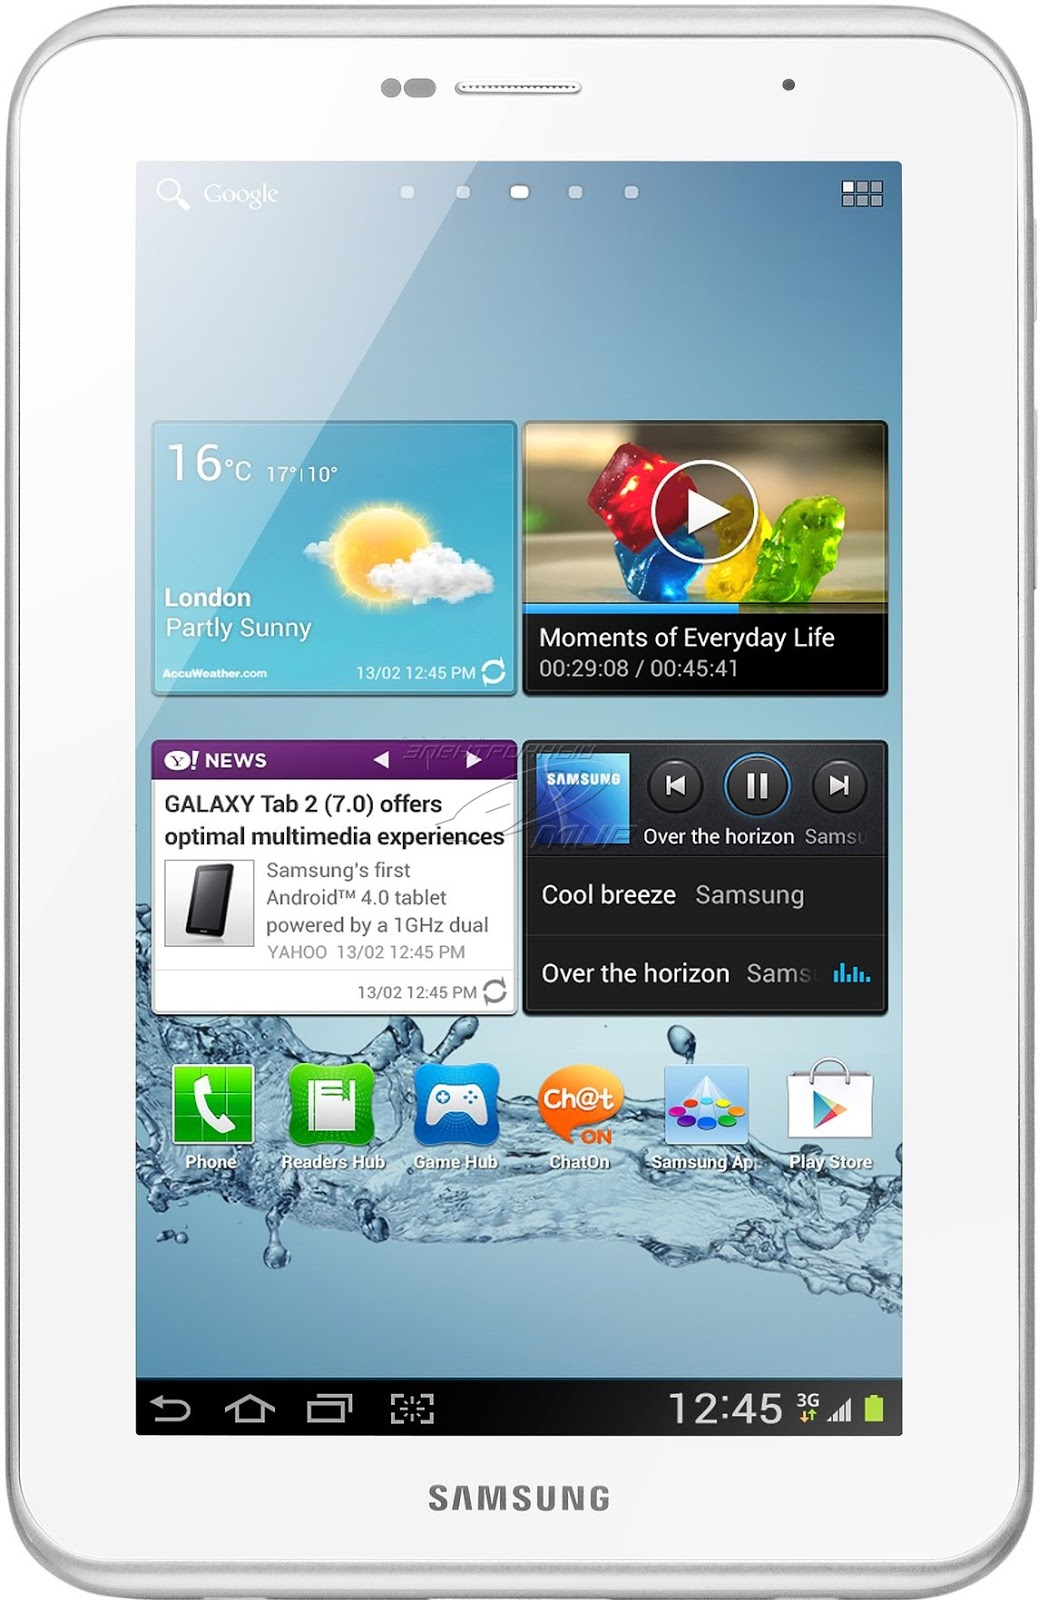 Catchtech February 2013 Samsung Galaxy Infinite 4 Inch Display Android 41 Jellybean Dual Core 12 Ghz Processor This Year Is Expected To Launch Note 80 Which Priced Between 249 299 Will Be Launched At Mwcmobile World Congress